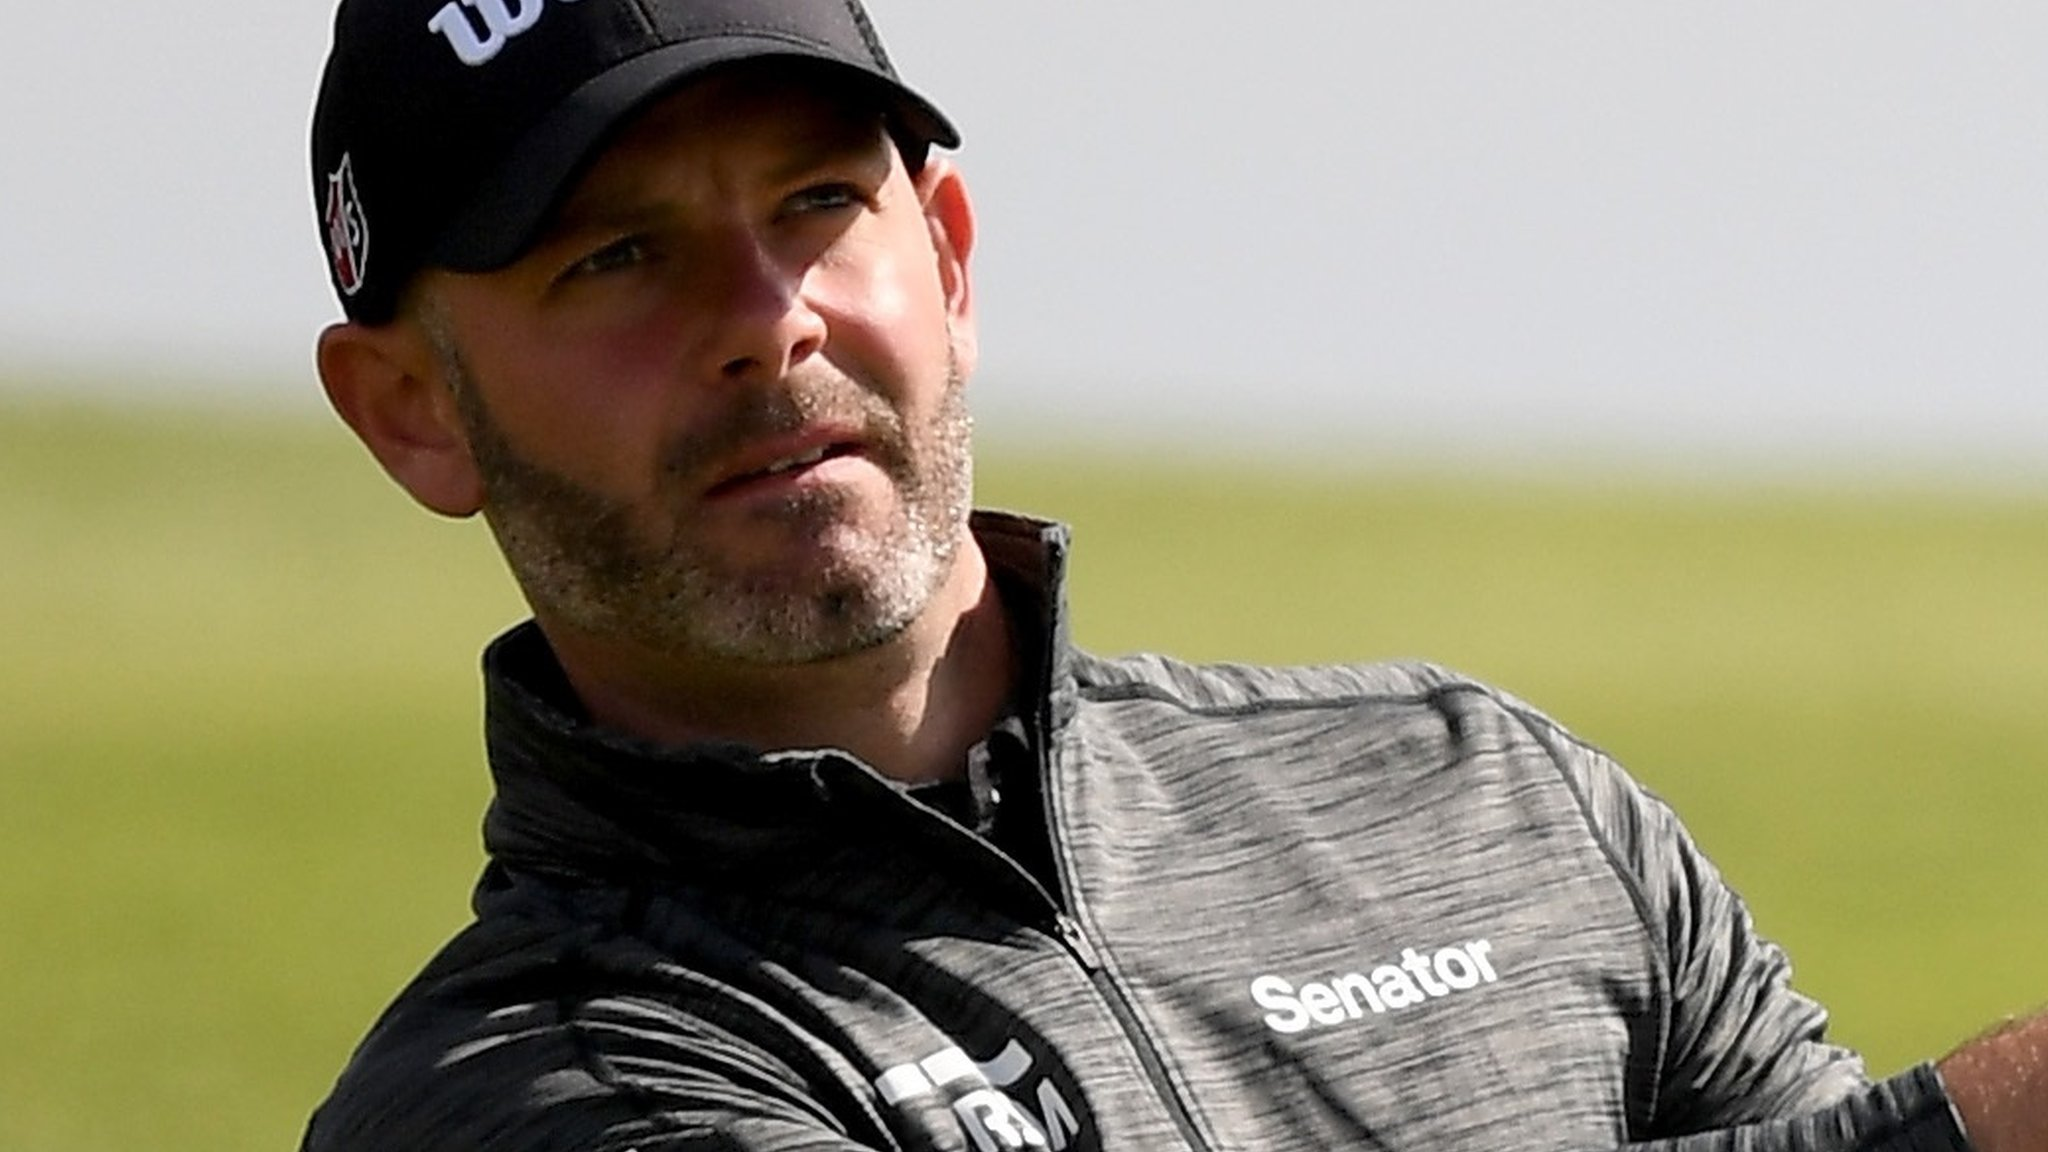 Hassan Trophy: Bradley Dredge and Paul Waring remain in contention